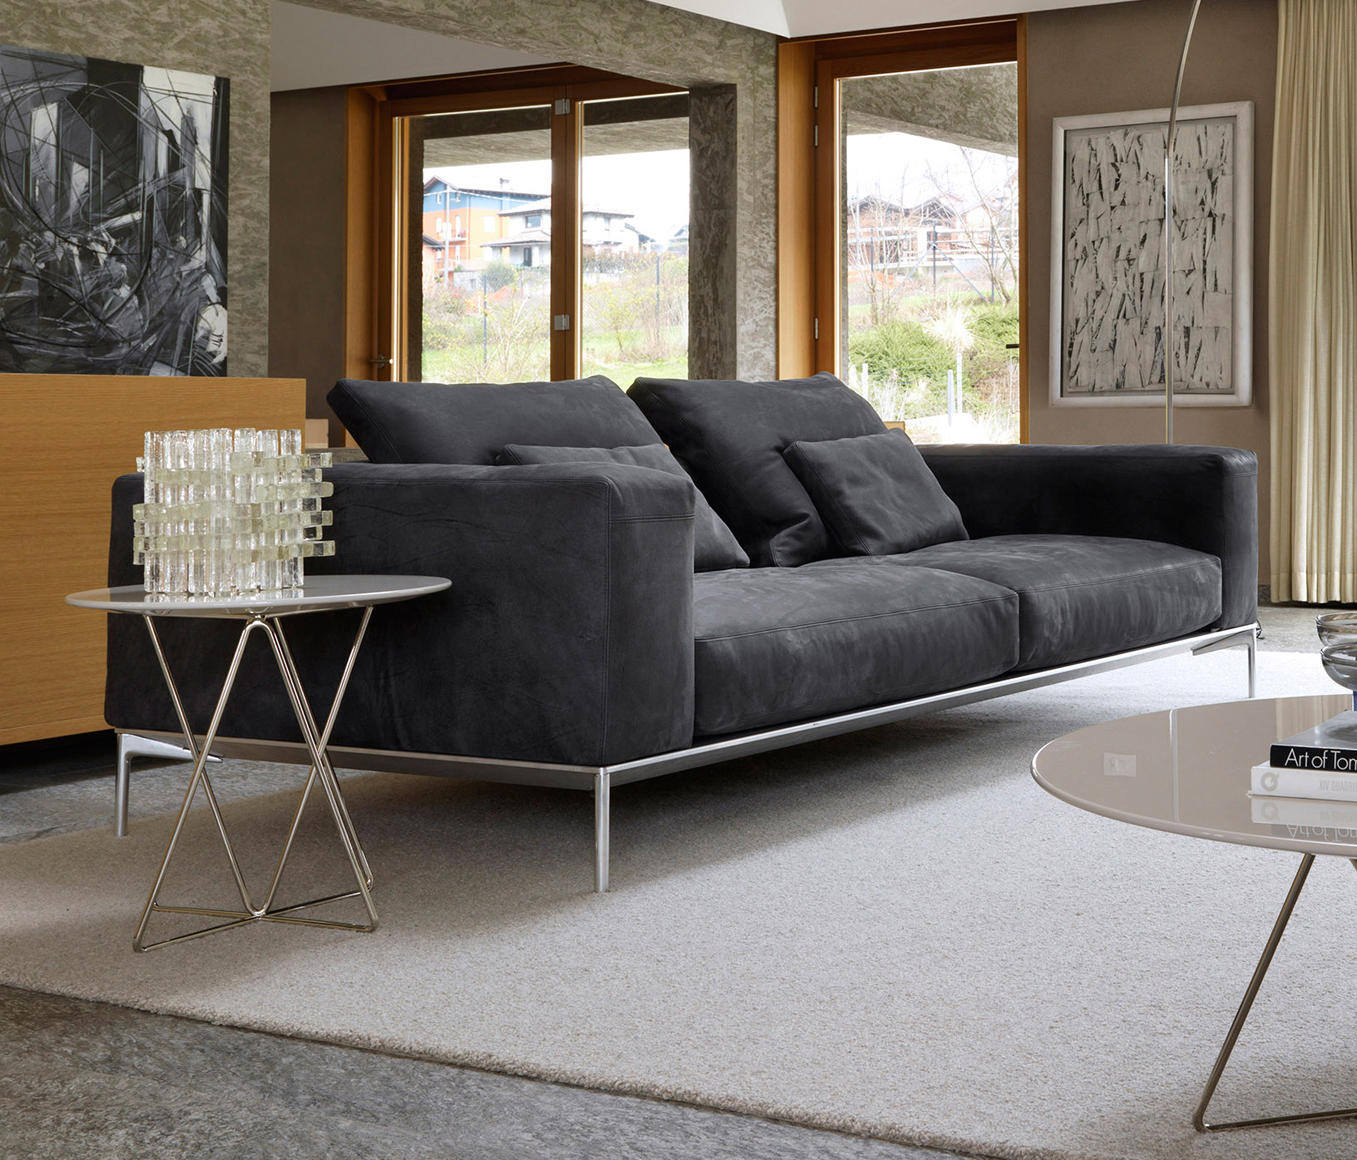 savoye sofas from d sir e architonic. Black Bedroom Furniture Sets. Home Design Ideas